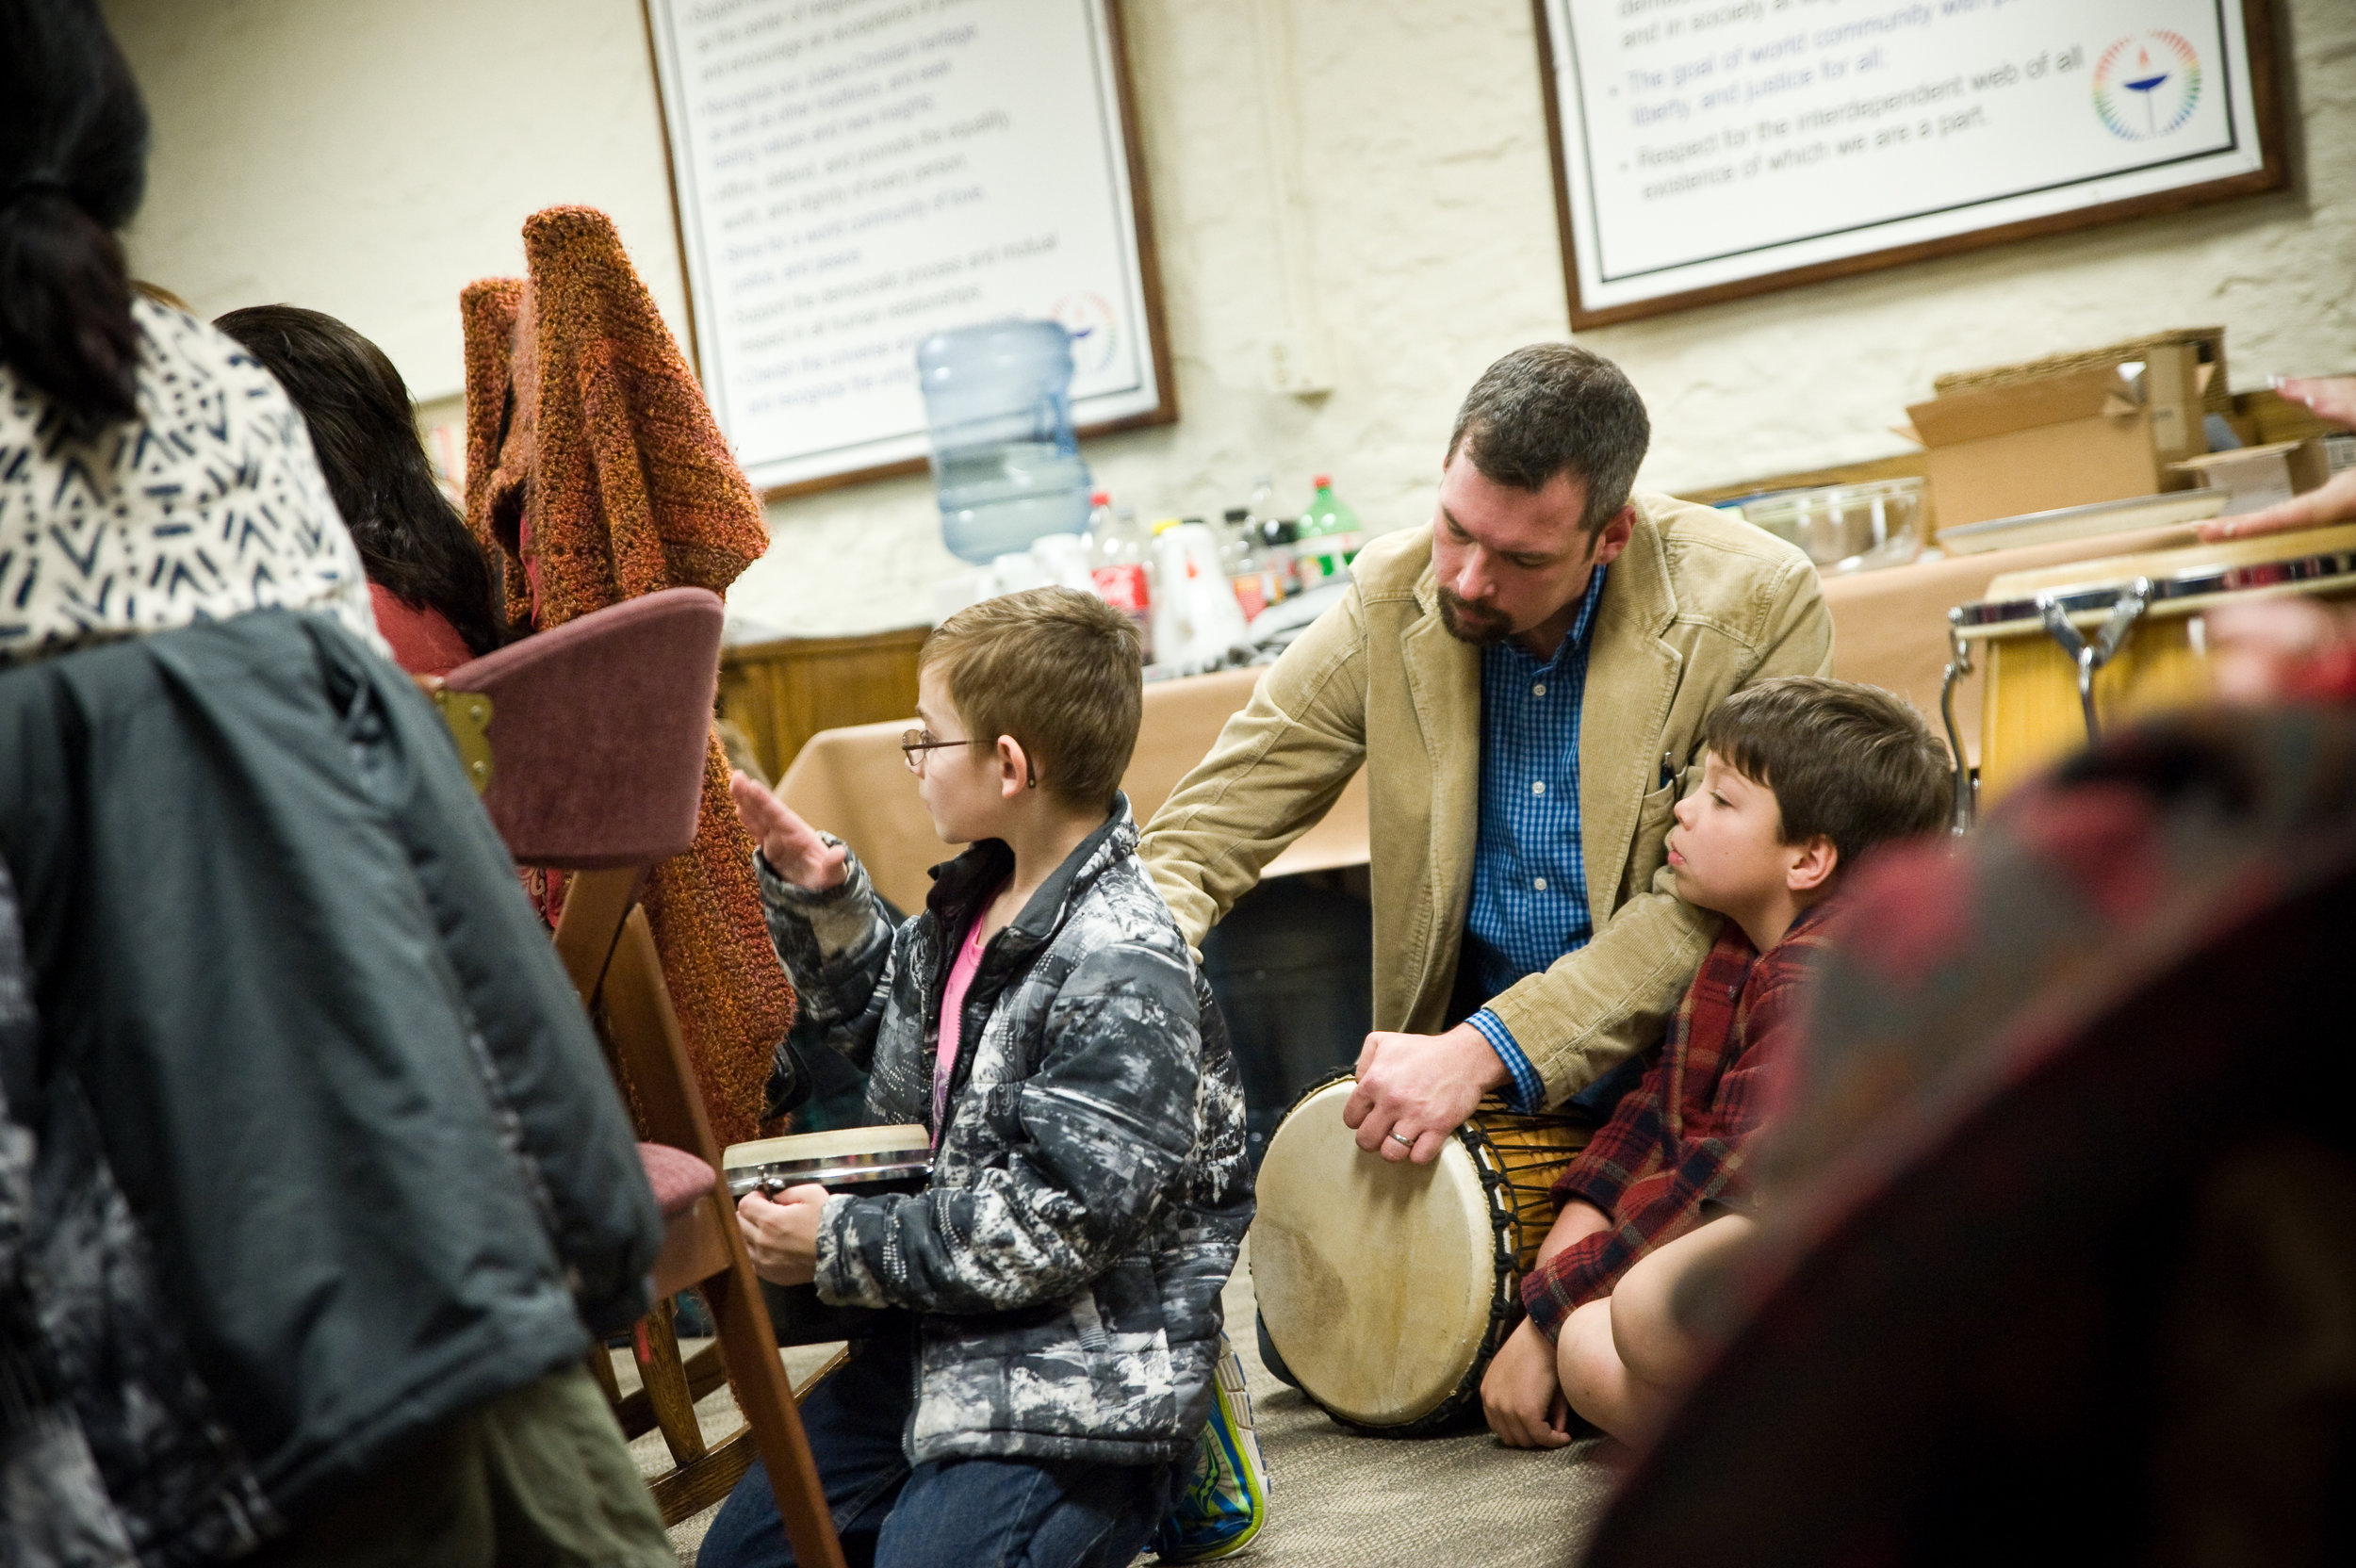 Aaron Whited and his son are sitting in on the drum circle. Aaron led an open mic earlier in the evening, and also helped coordinate the candlelight ceremony, following the circle. Photo by Michelle Waters.